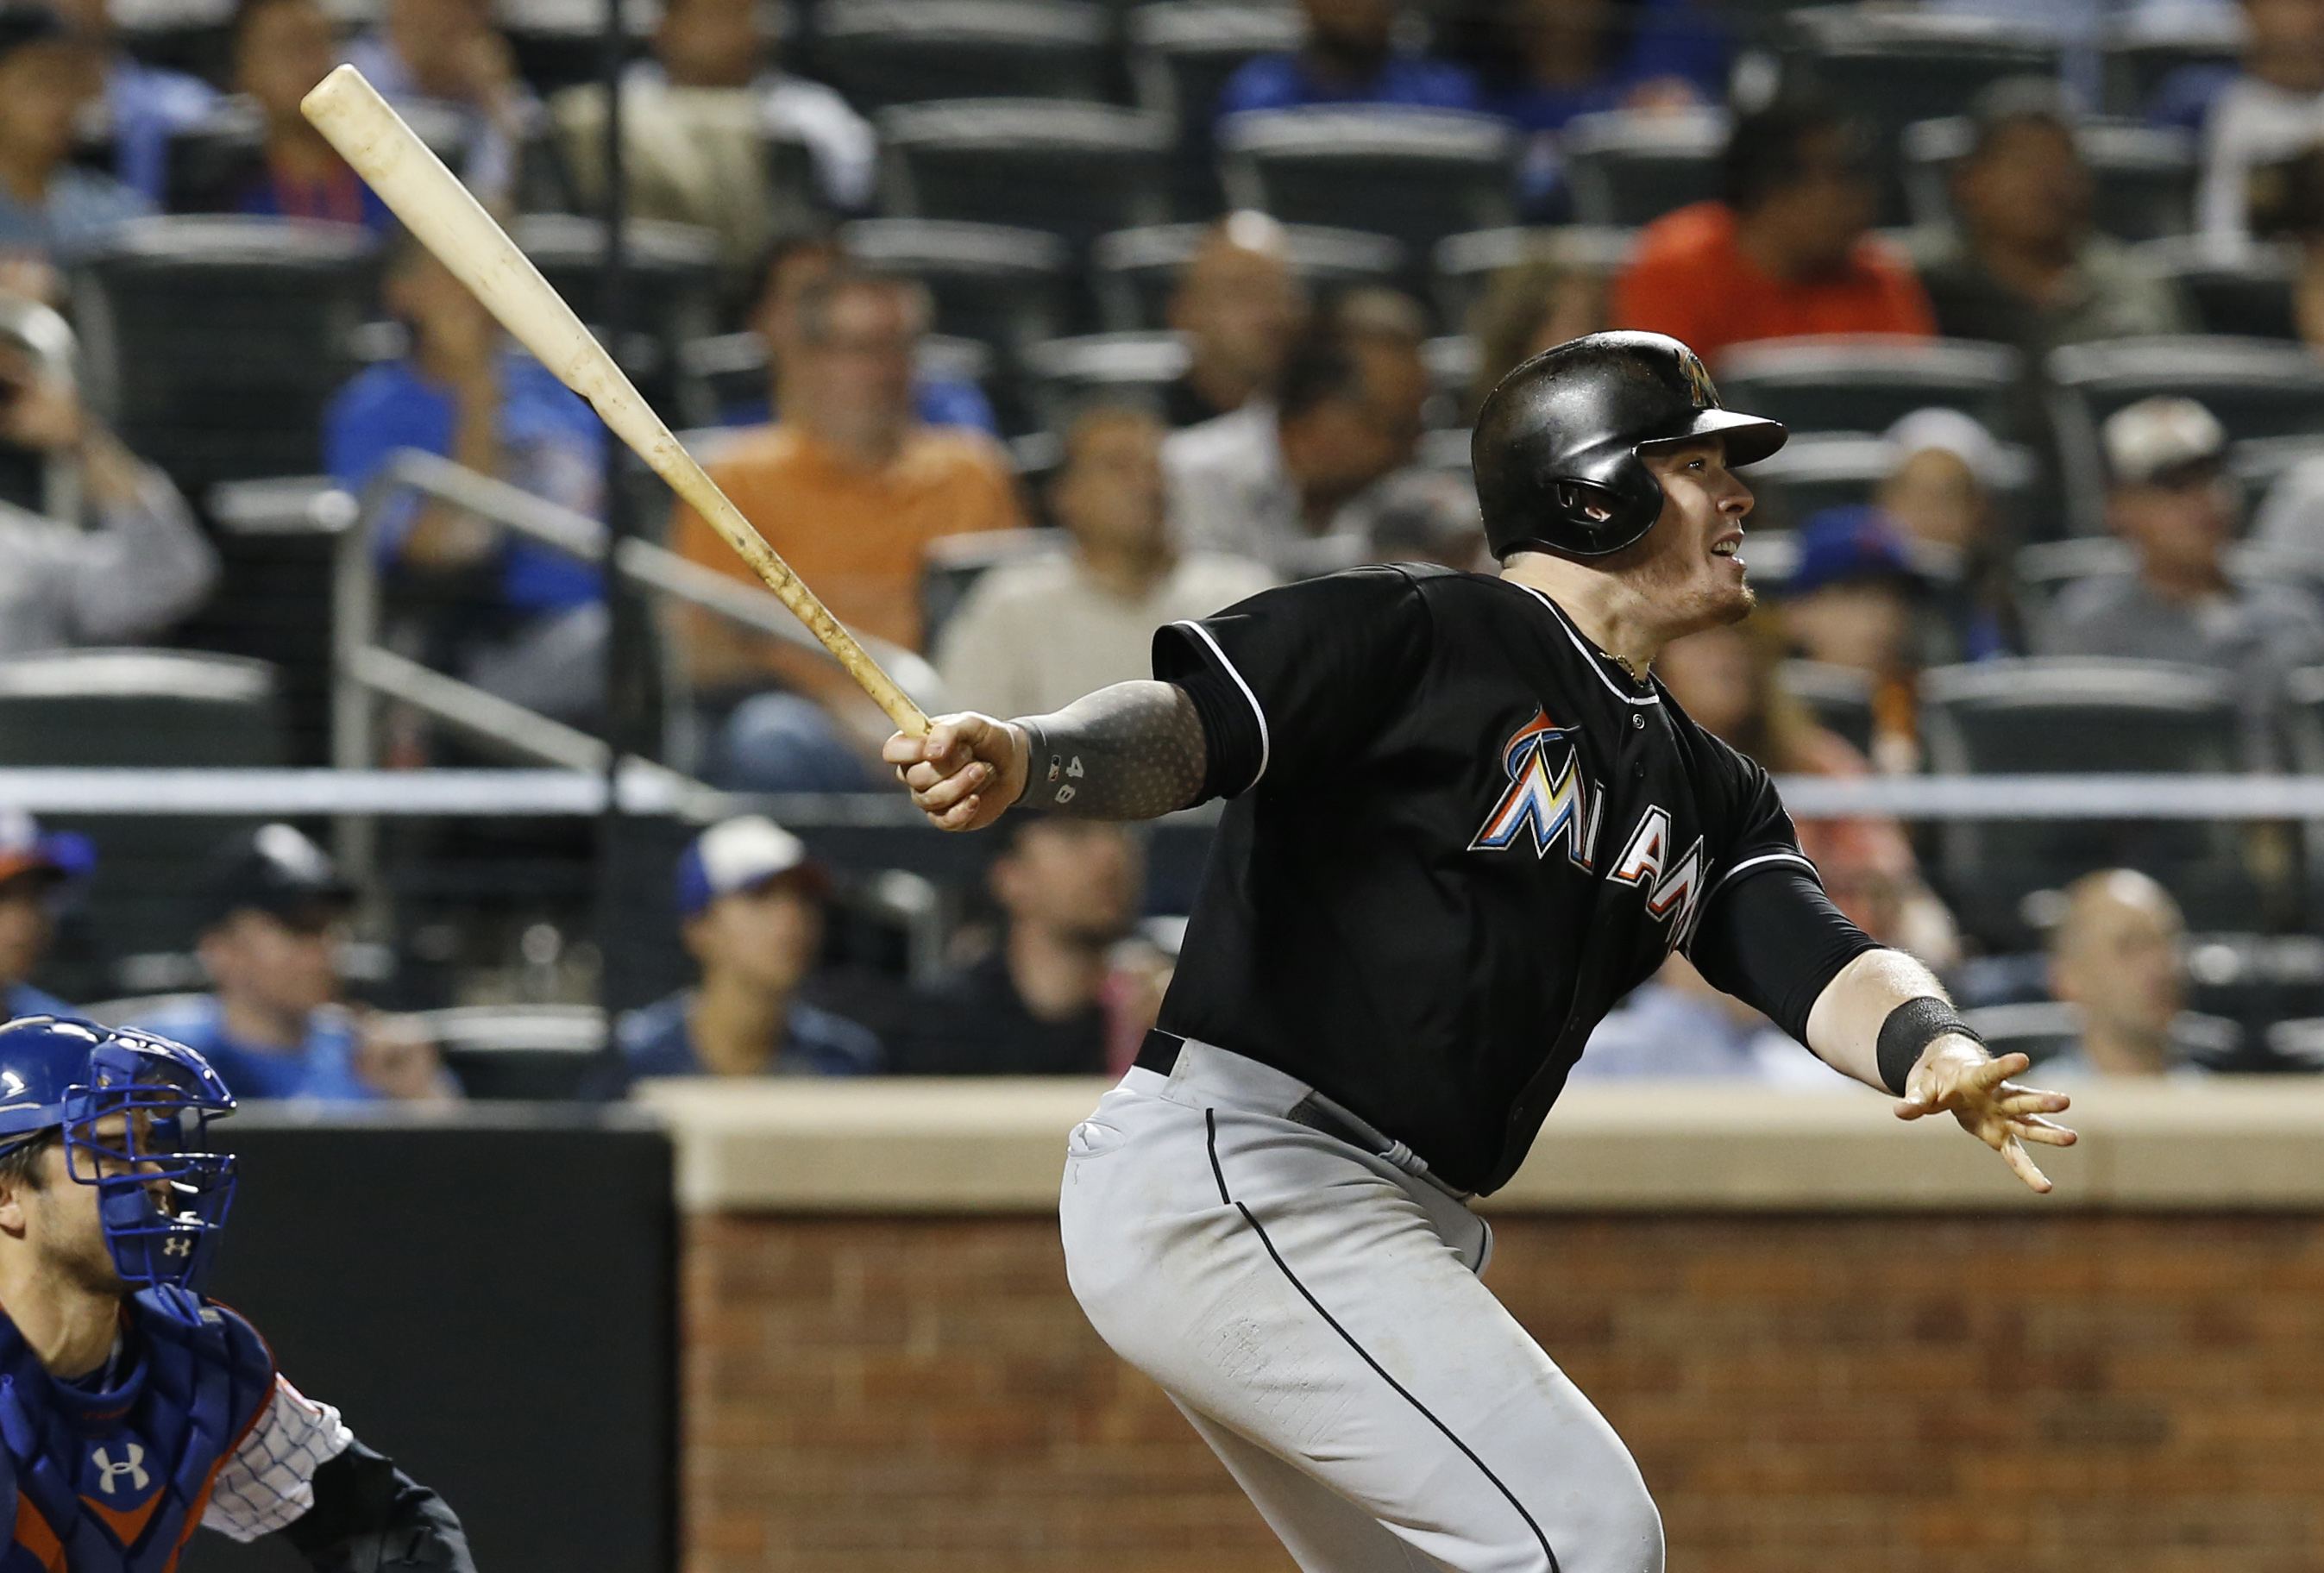 Miami Marlins' Justin Bour watches a sixth-inning sacrifice fly in a baseball game against the New York Mets in New York, Wednesday, Sept. 16, 2015. (AP Photo/Kathy Willens)